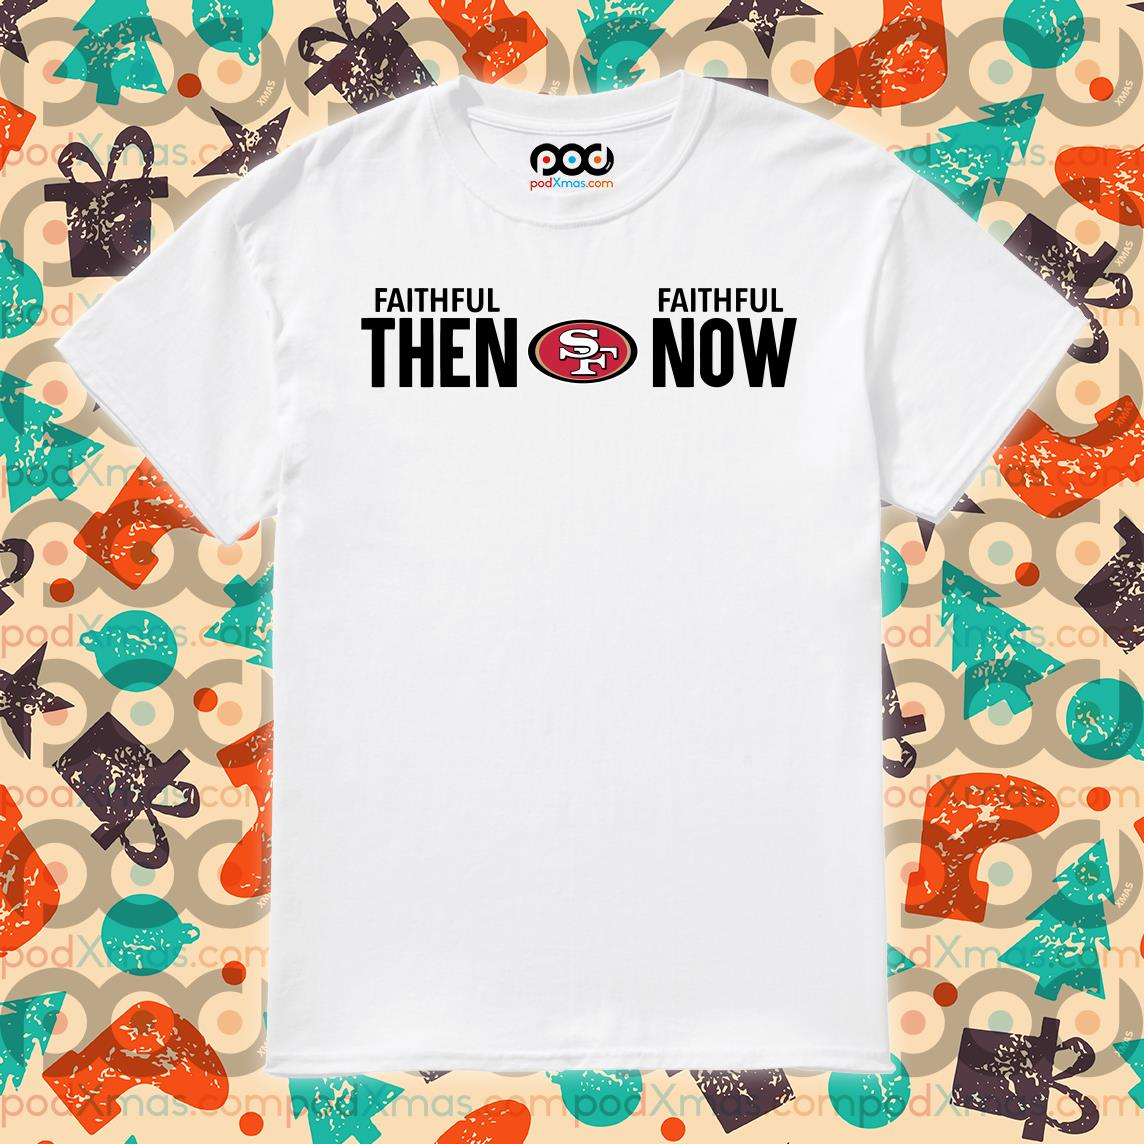 San Francisco 49ers Faithful Then Faithful Now Shirt